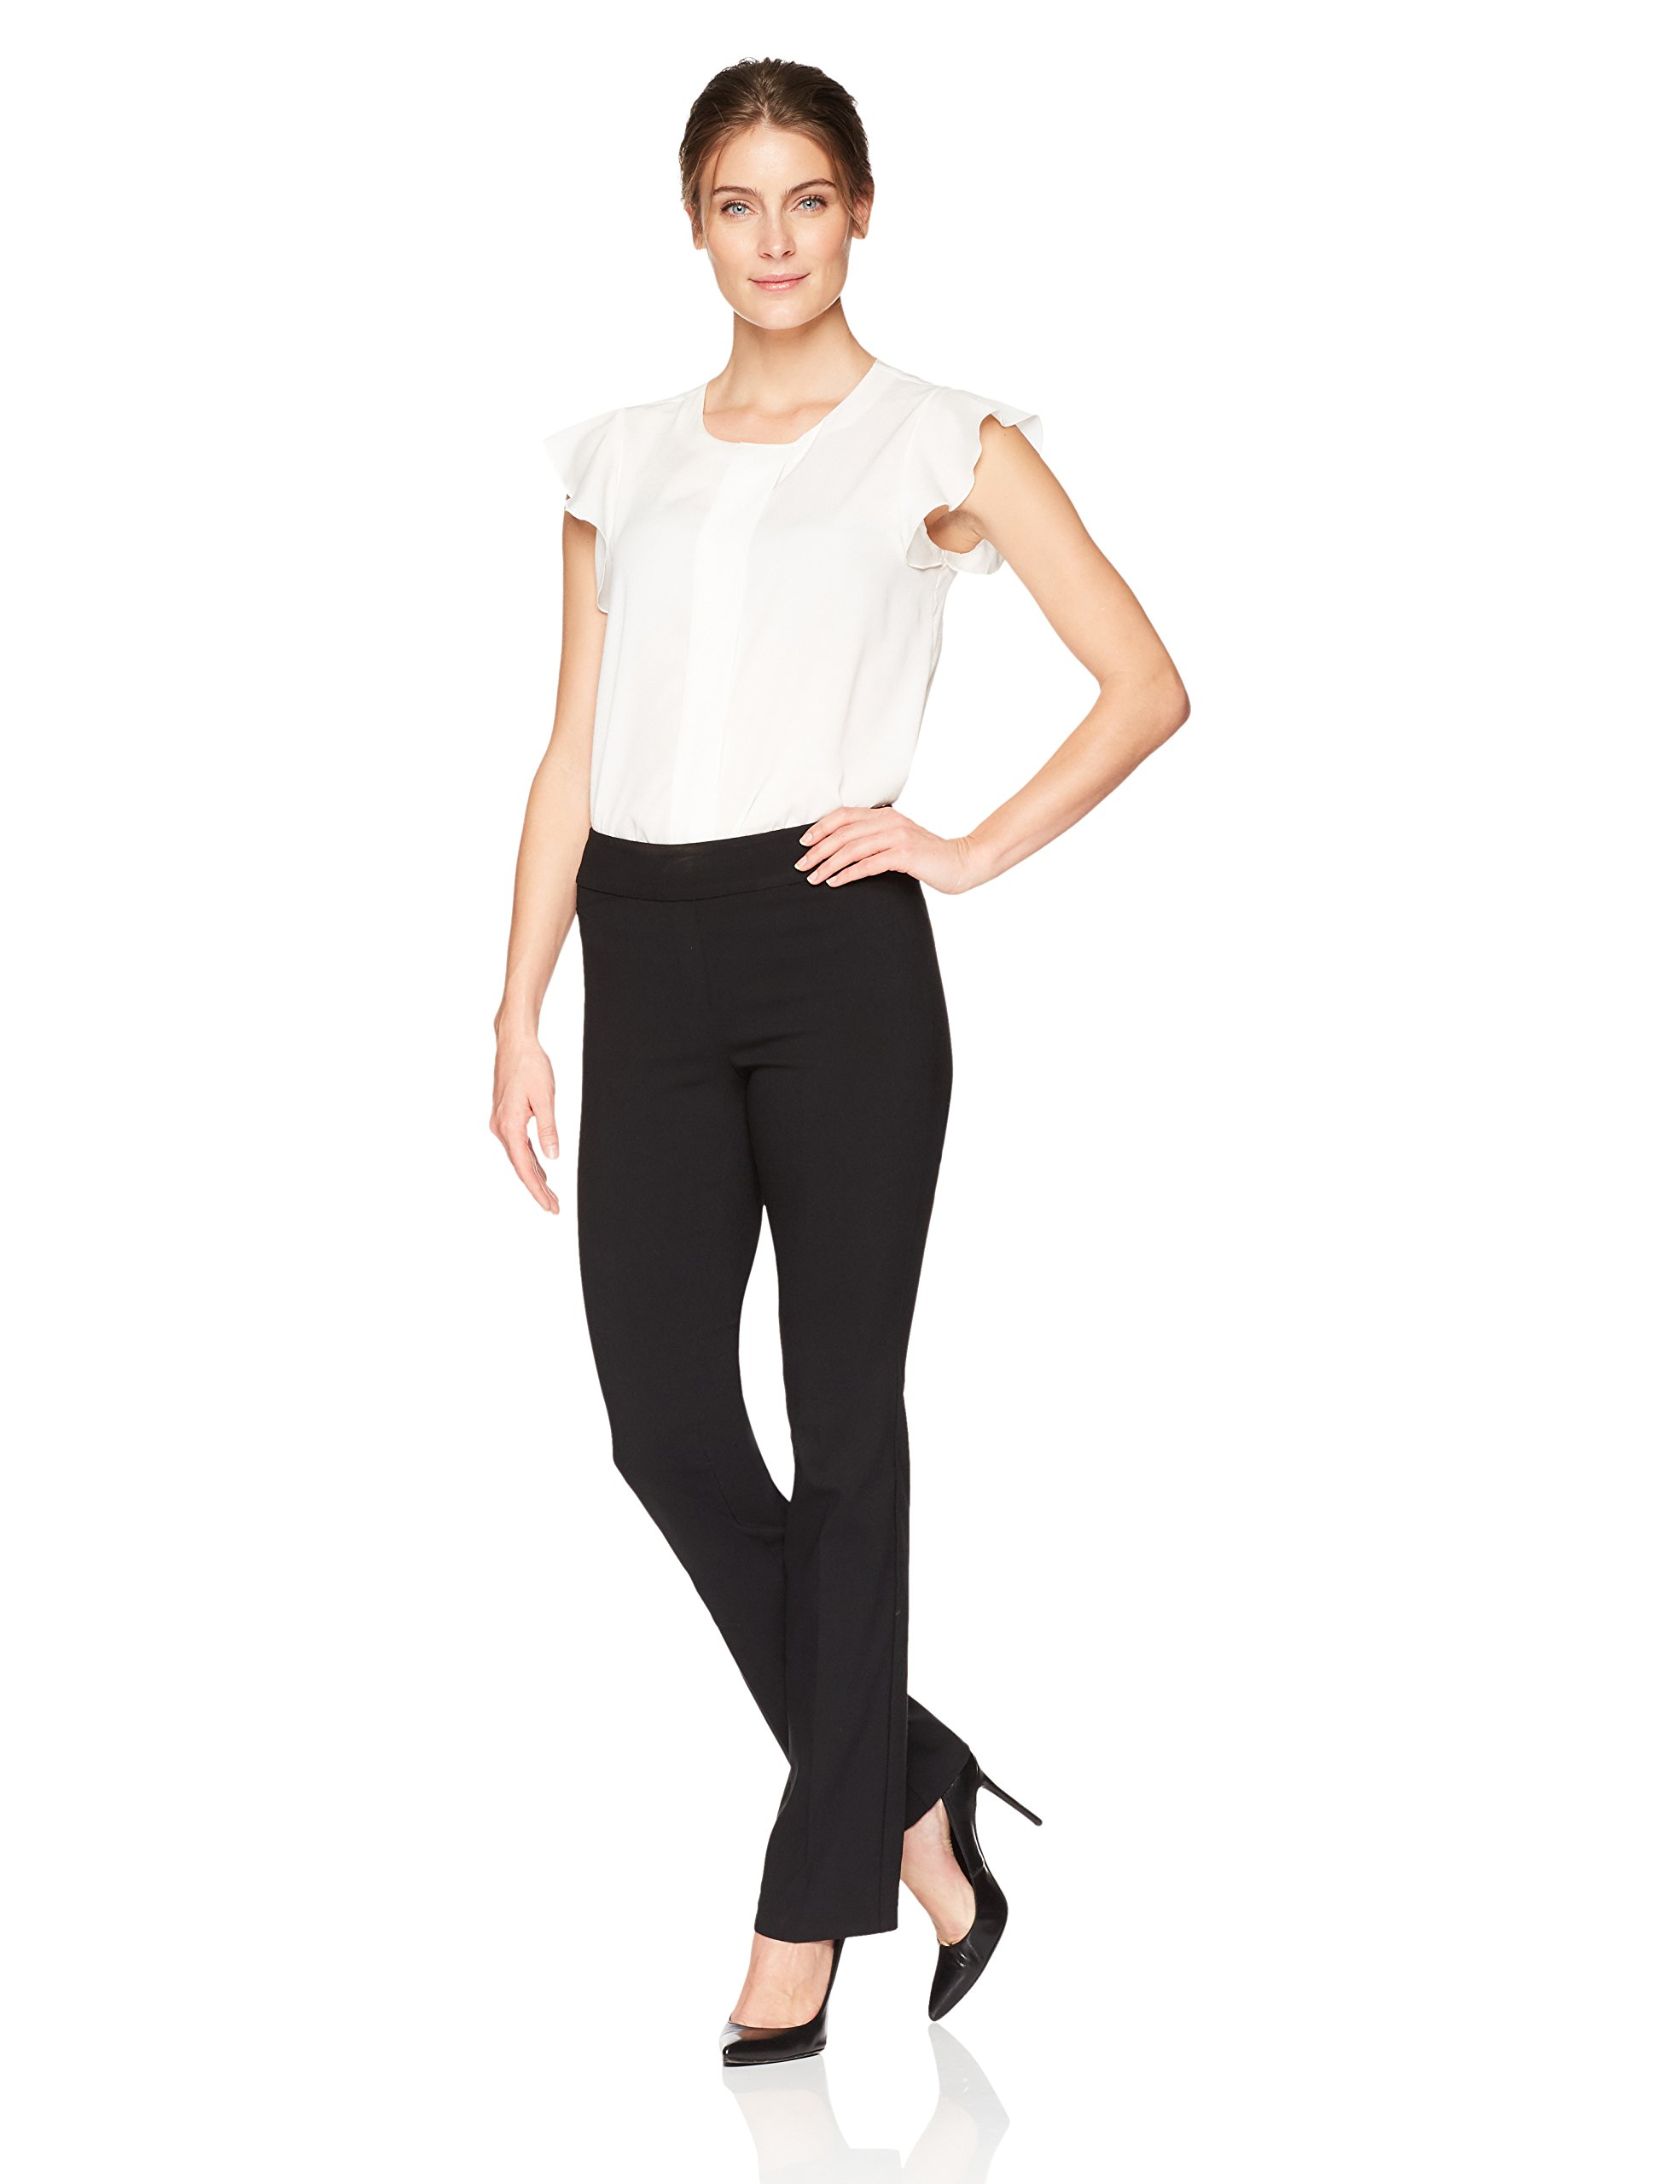 Lark & Ro Women's Barely Bootcut Stretch Pant: Comfort Fit, Black, 16 by Lark & Ro (Image #2)